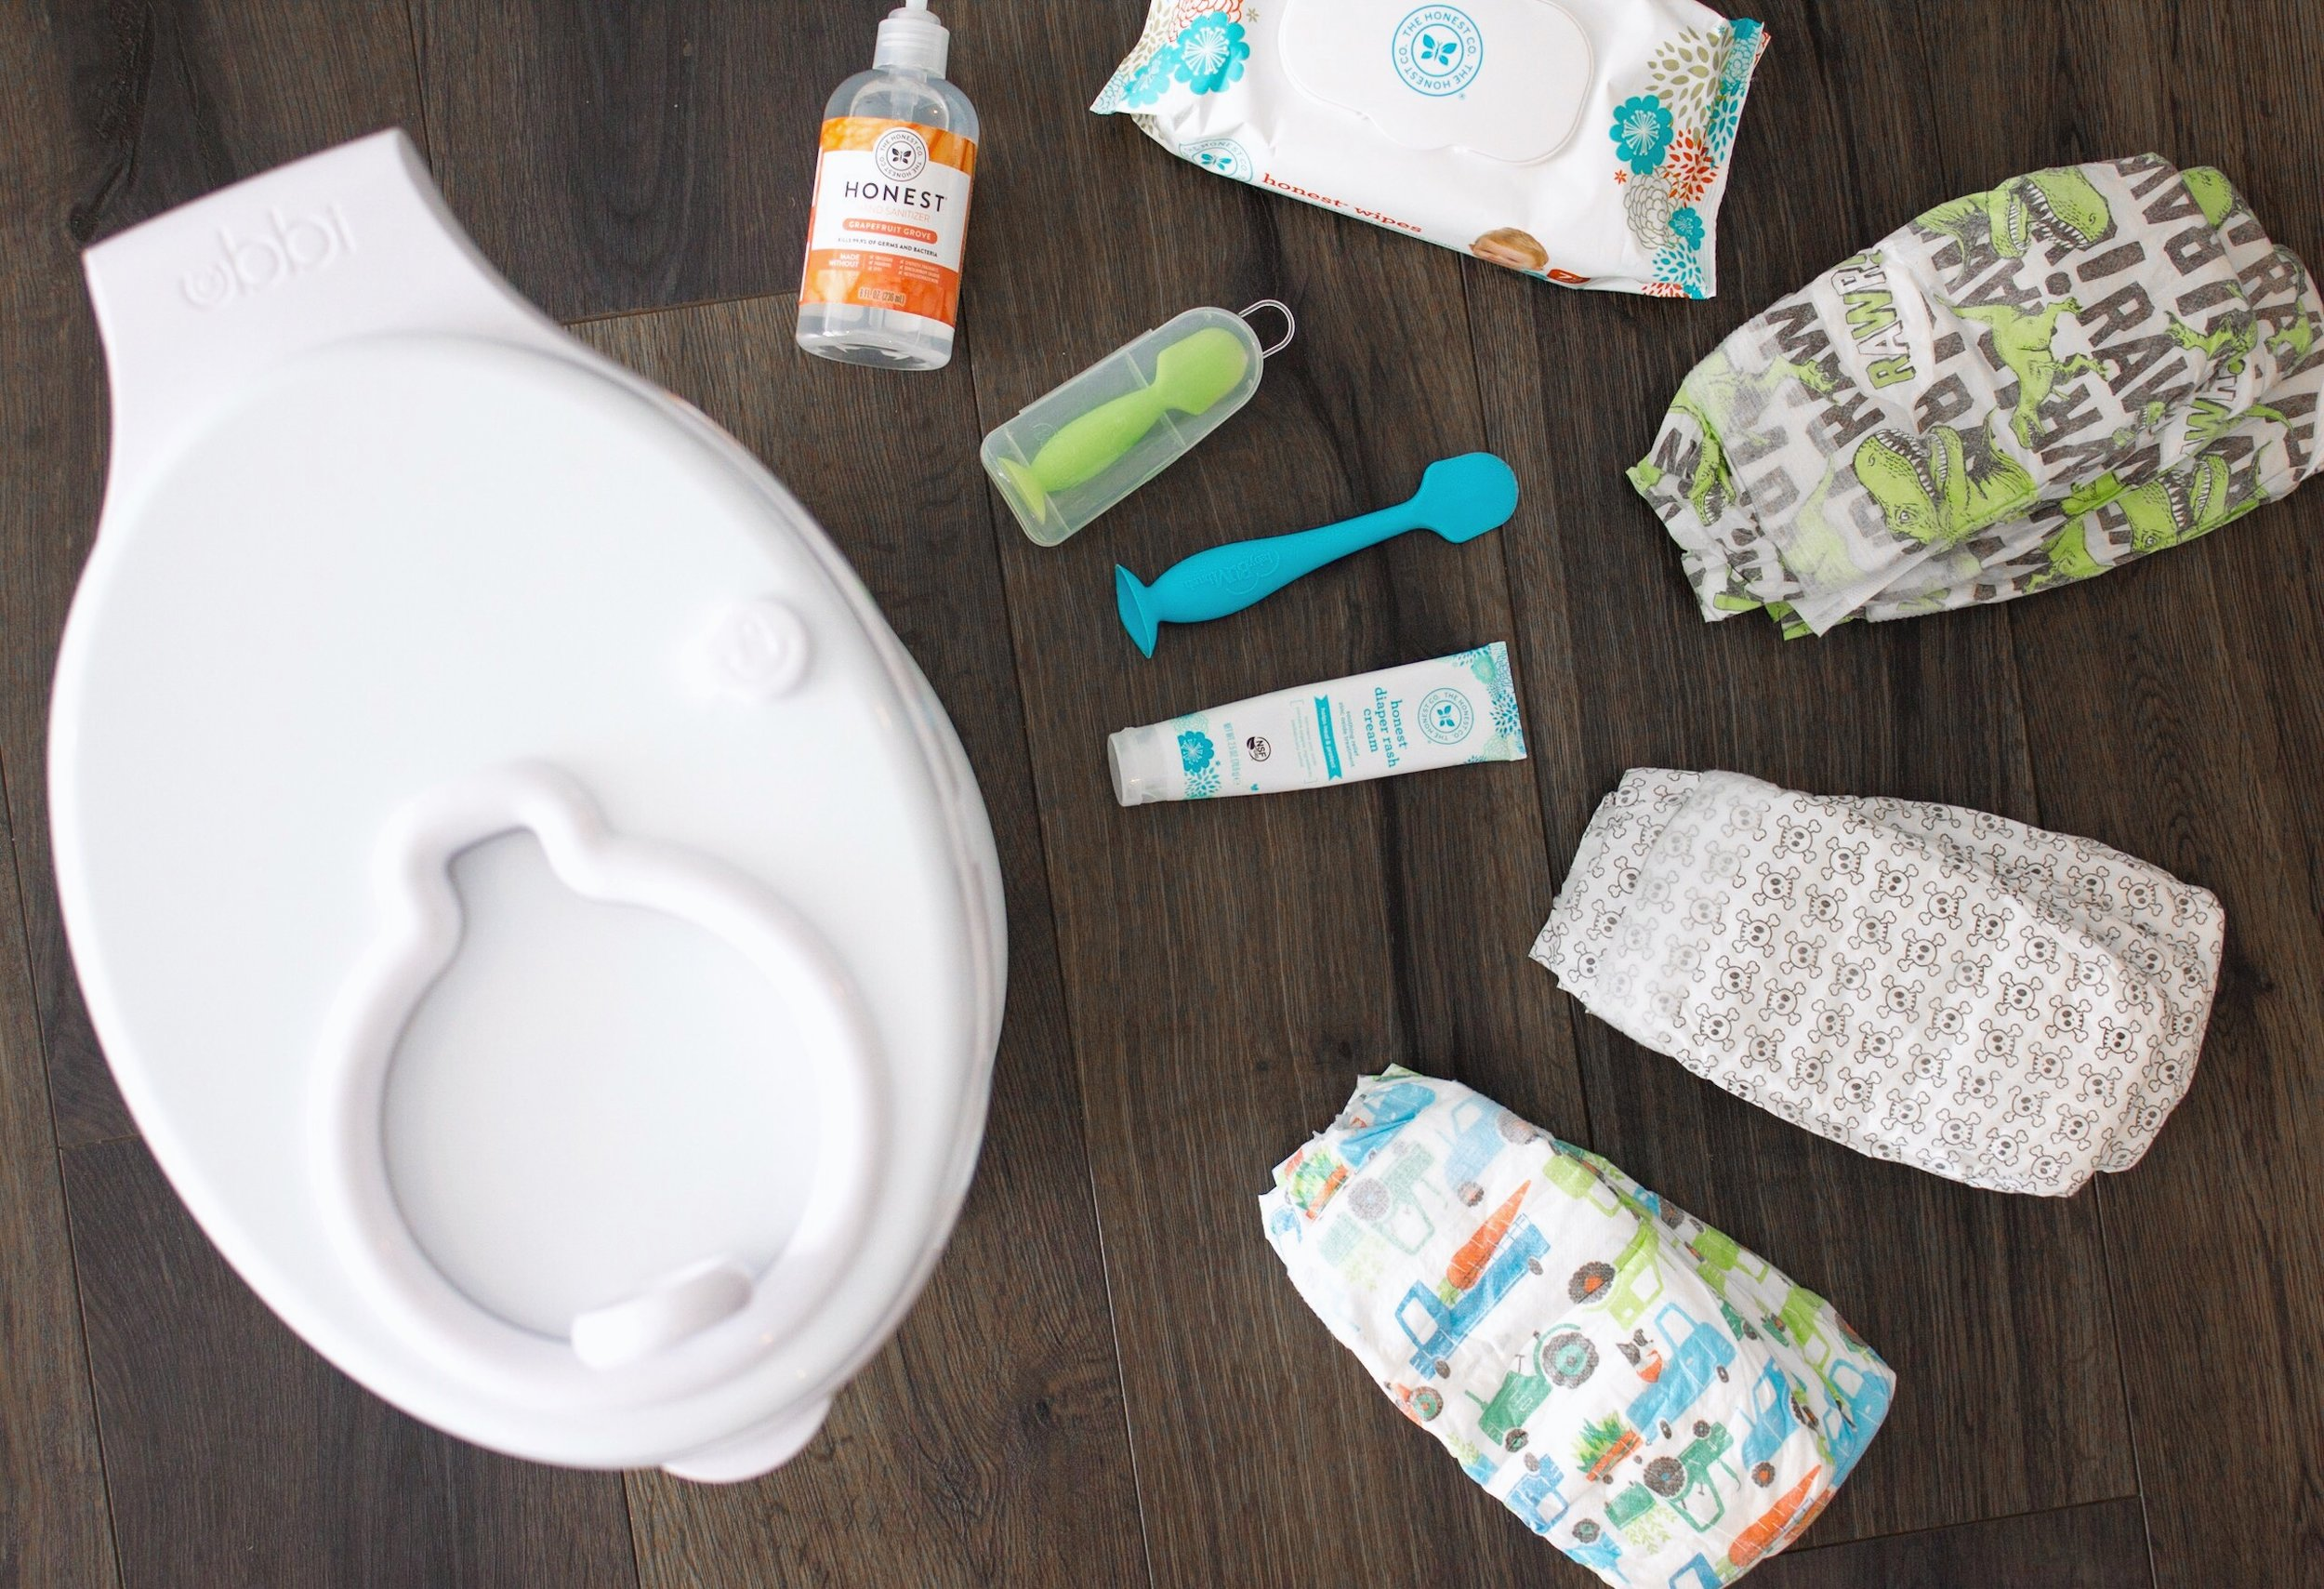 Ubbi Diaper Pail // BabyBum Mini Diaper Cream Brush // Honest Diapers